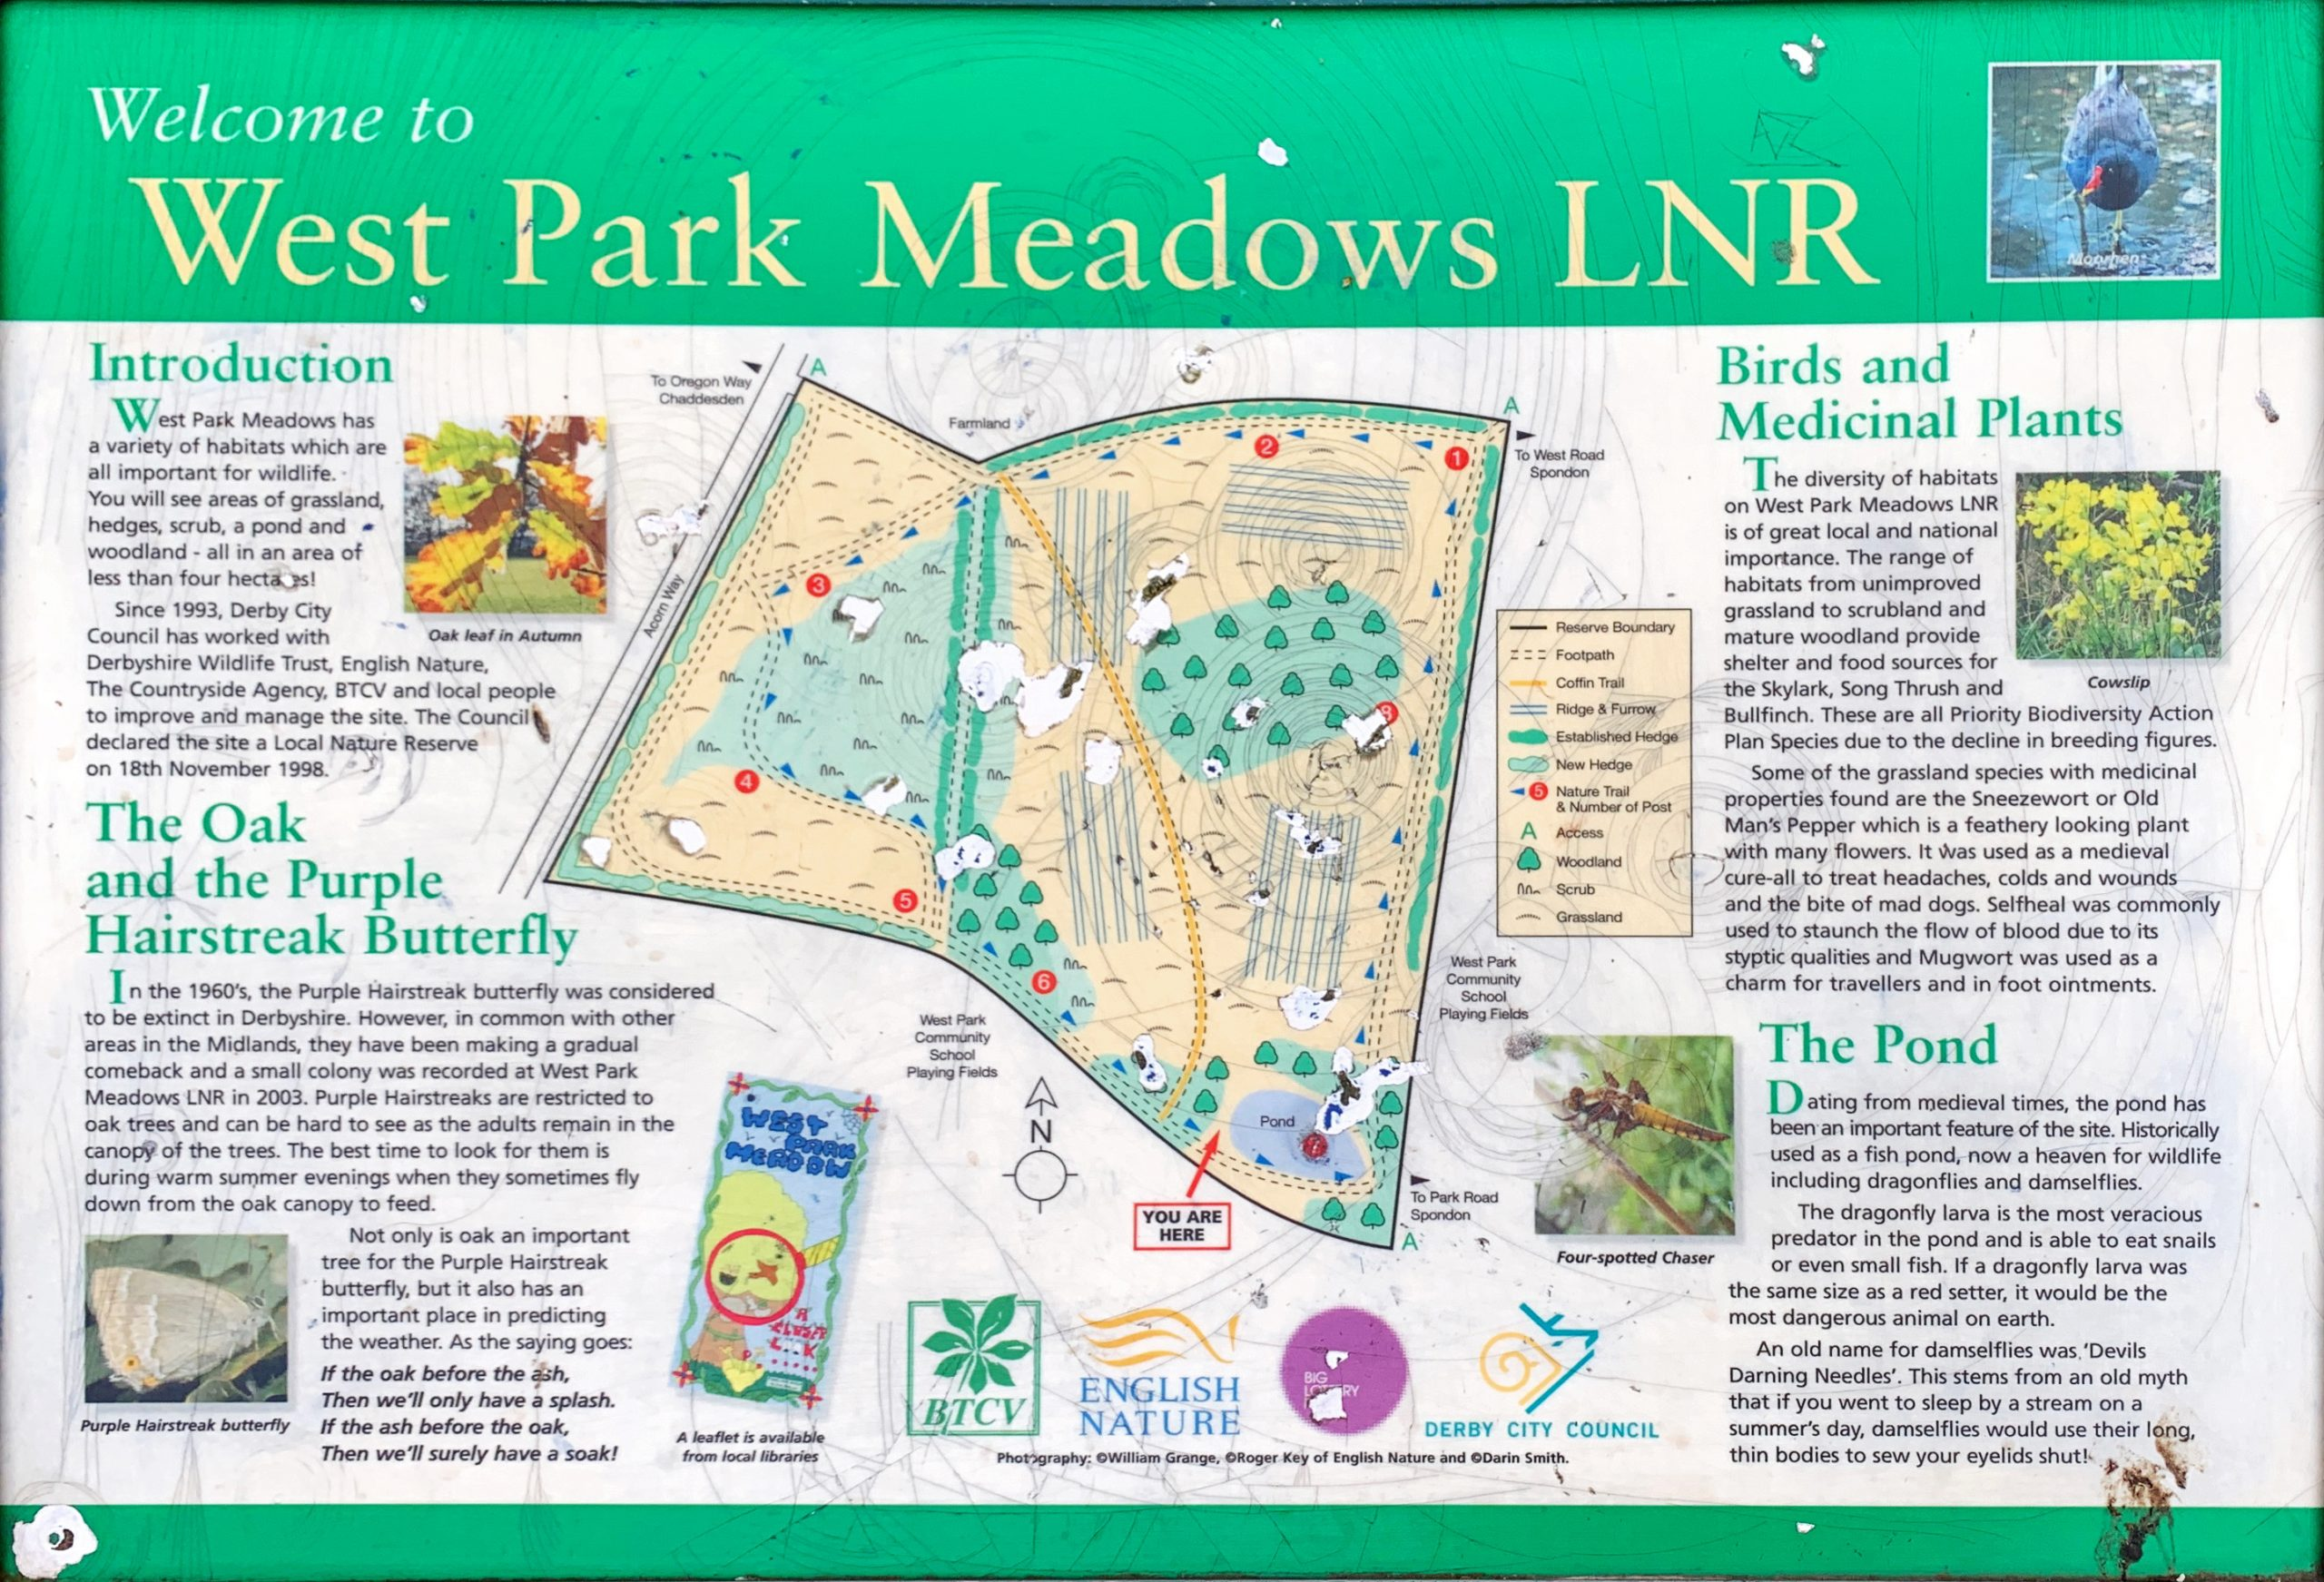 West Park Meadows